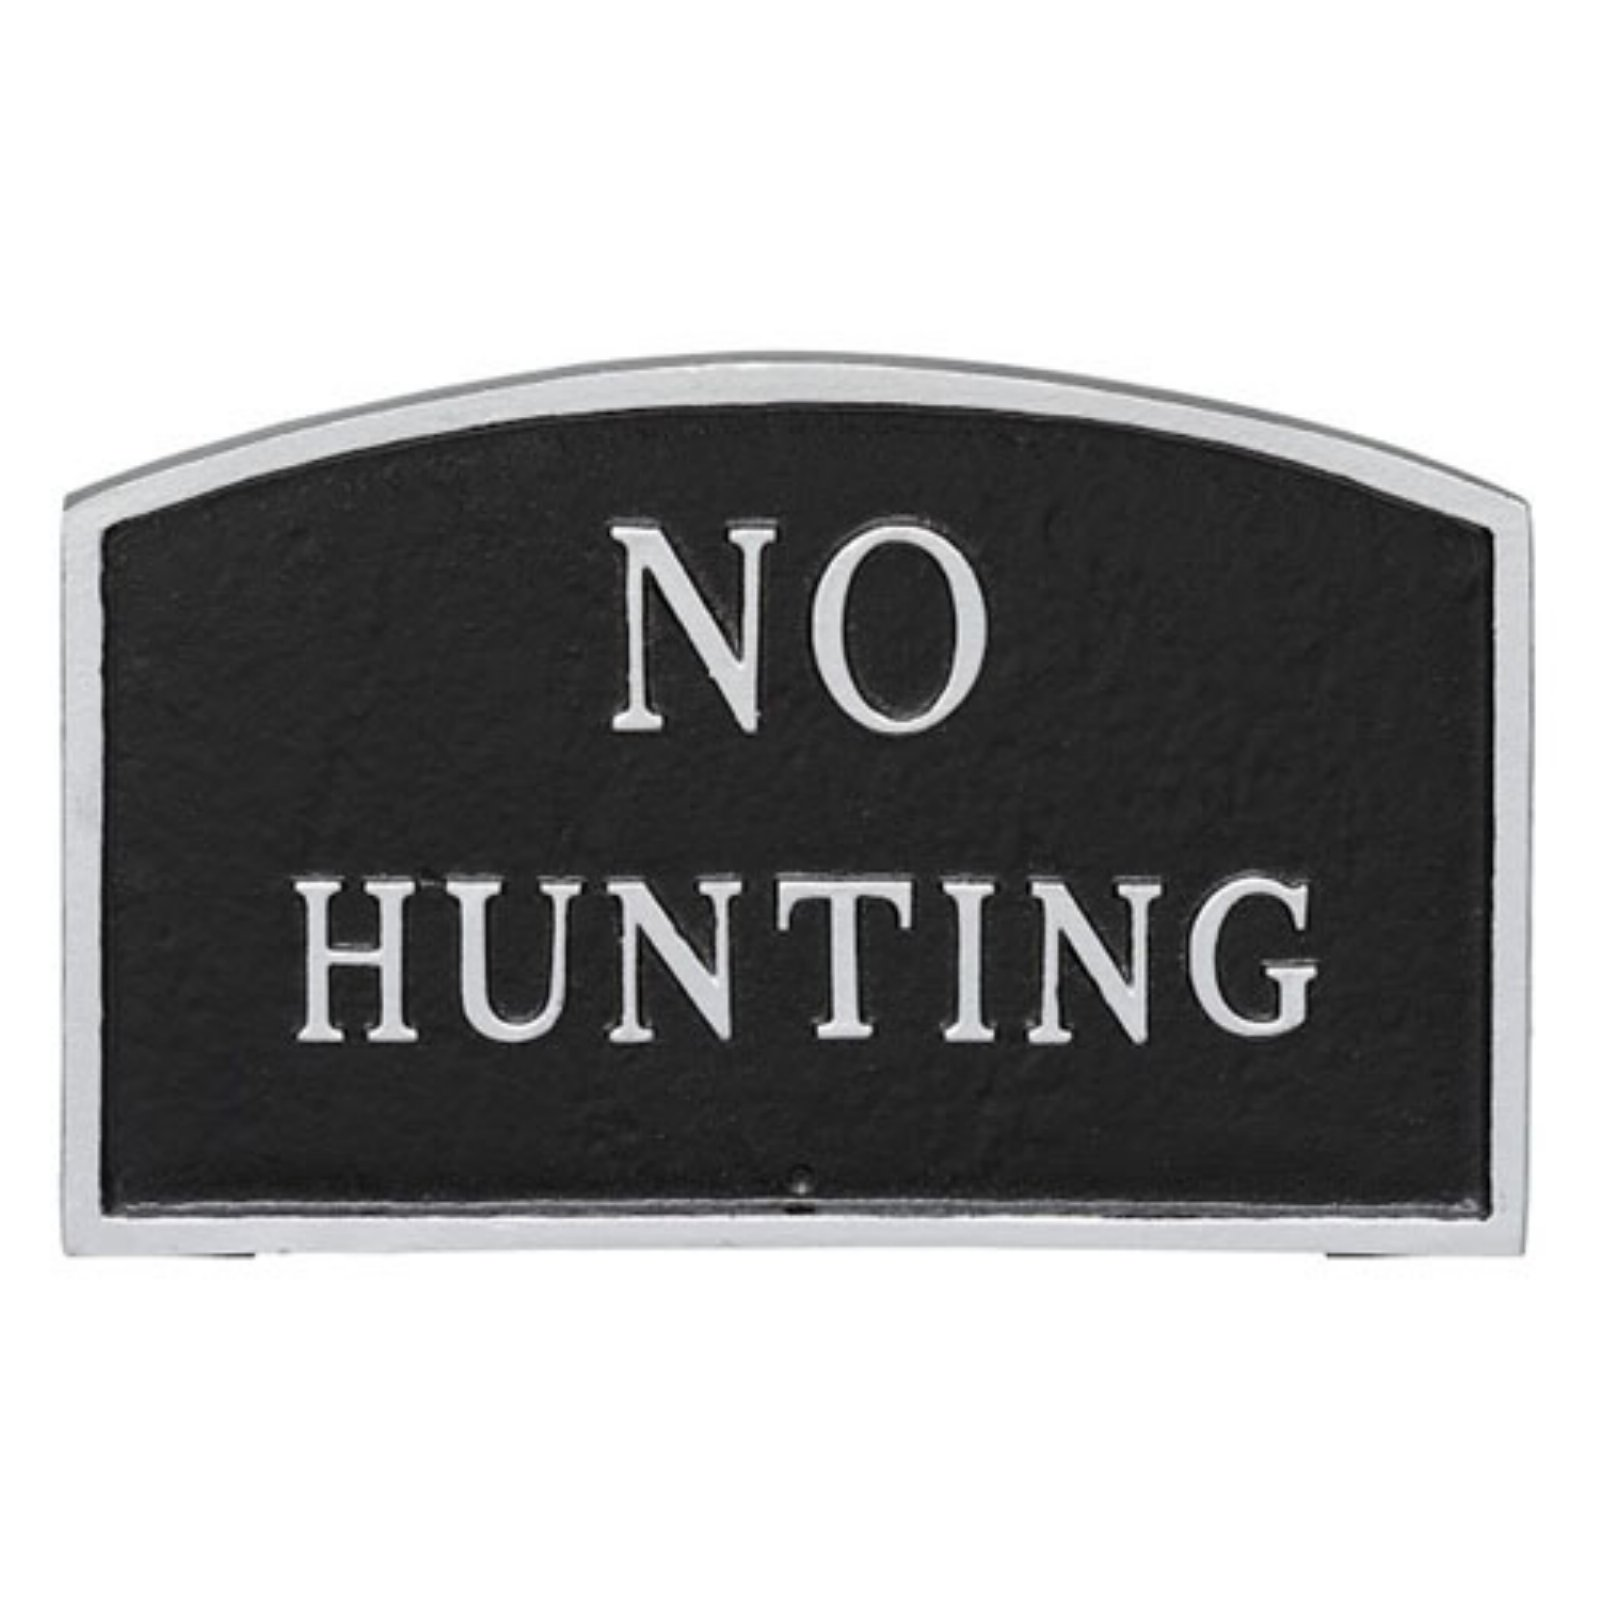 Montague Metal Products No Hunting Arched Wall Plaque